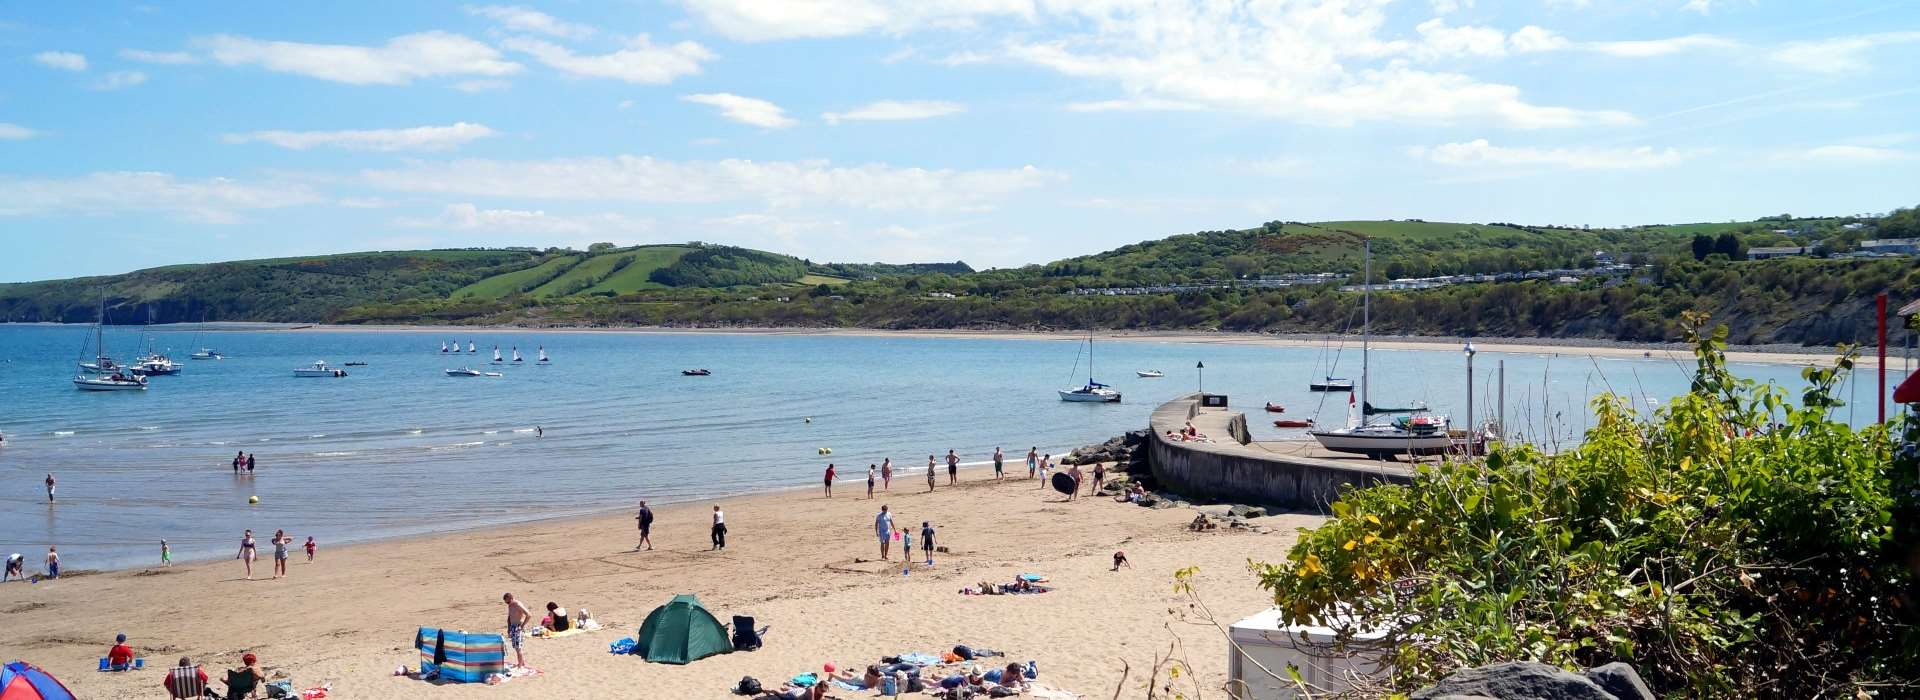 ENJOY OUR FINEST WELSH BEACHES